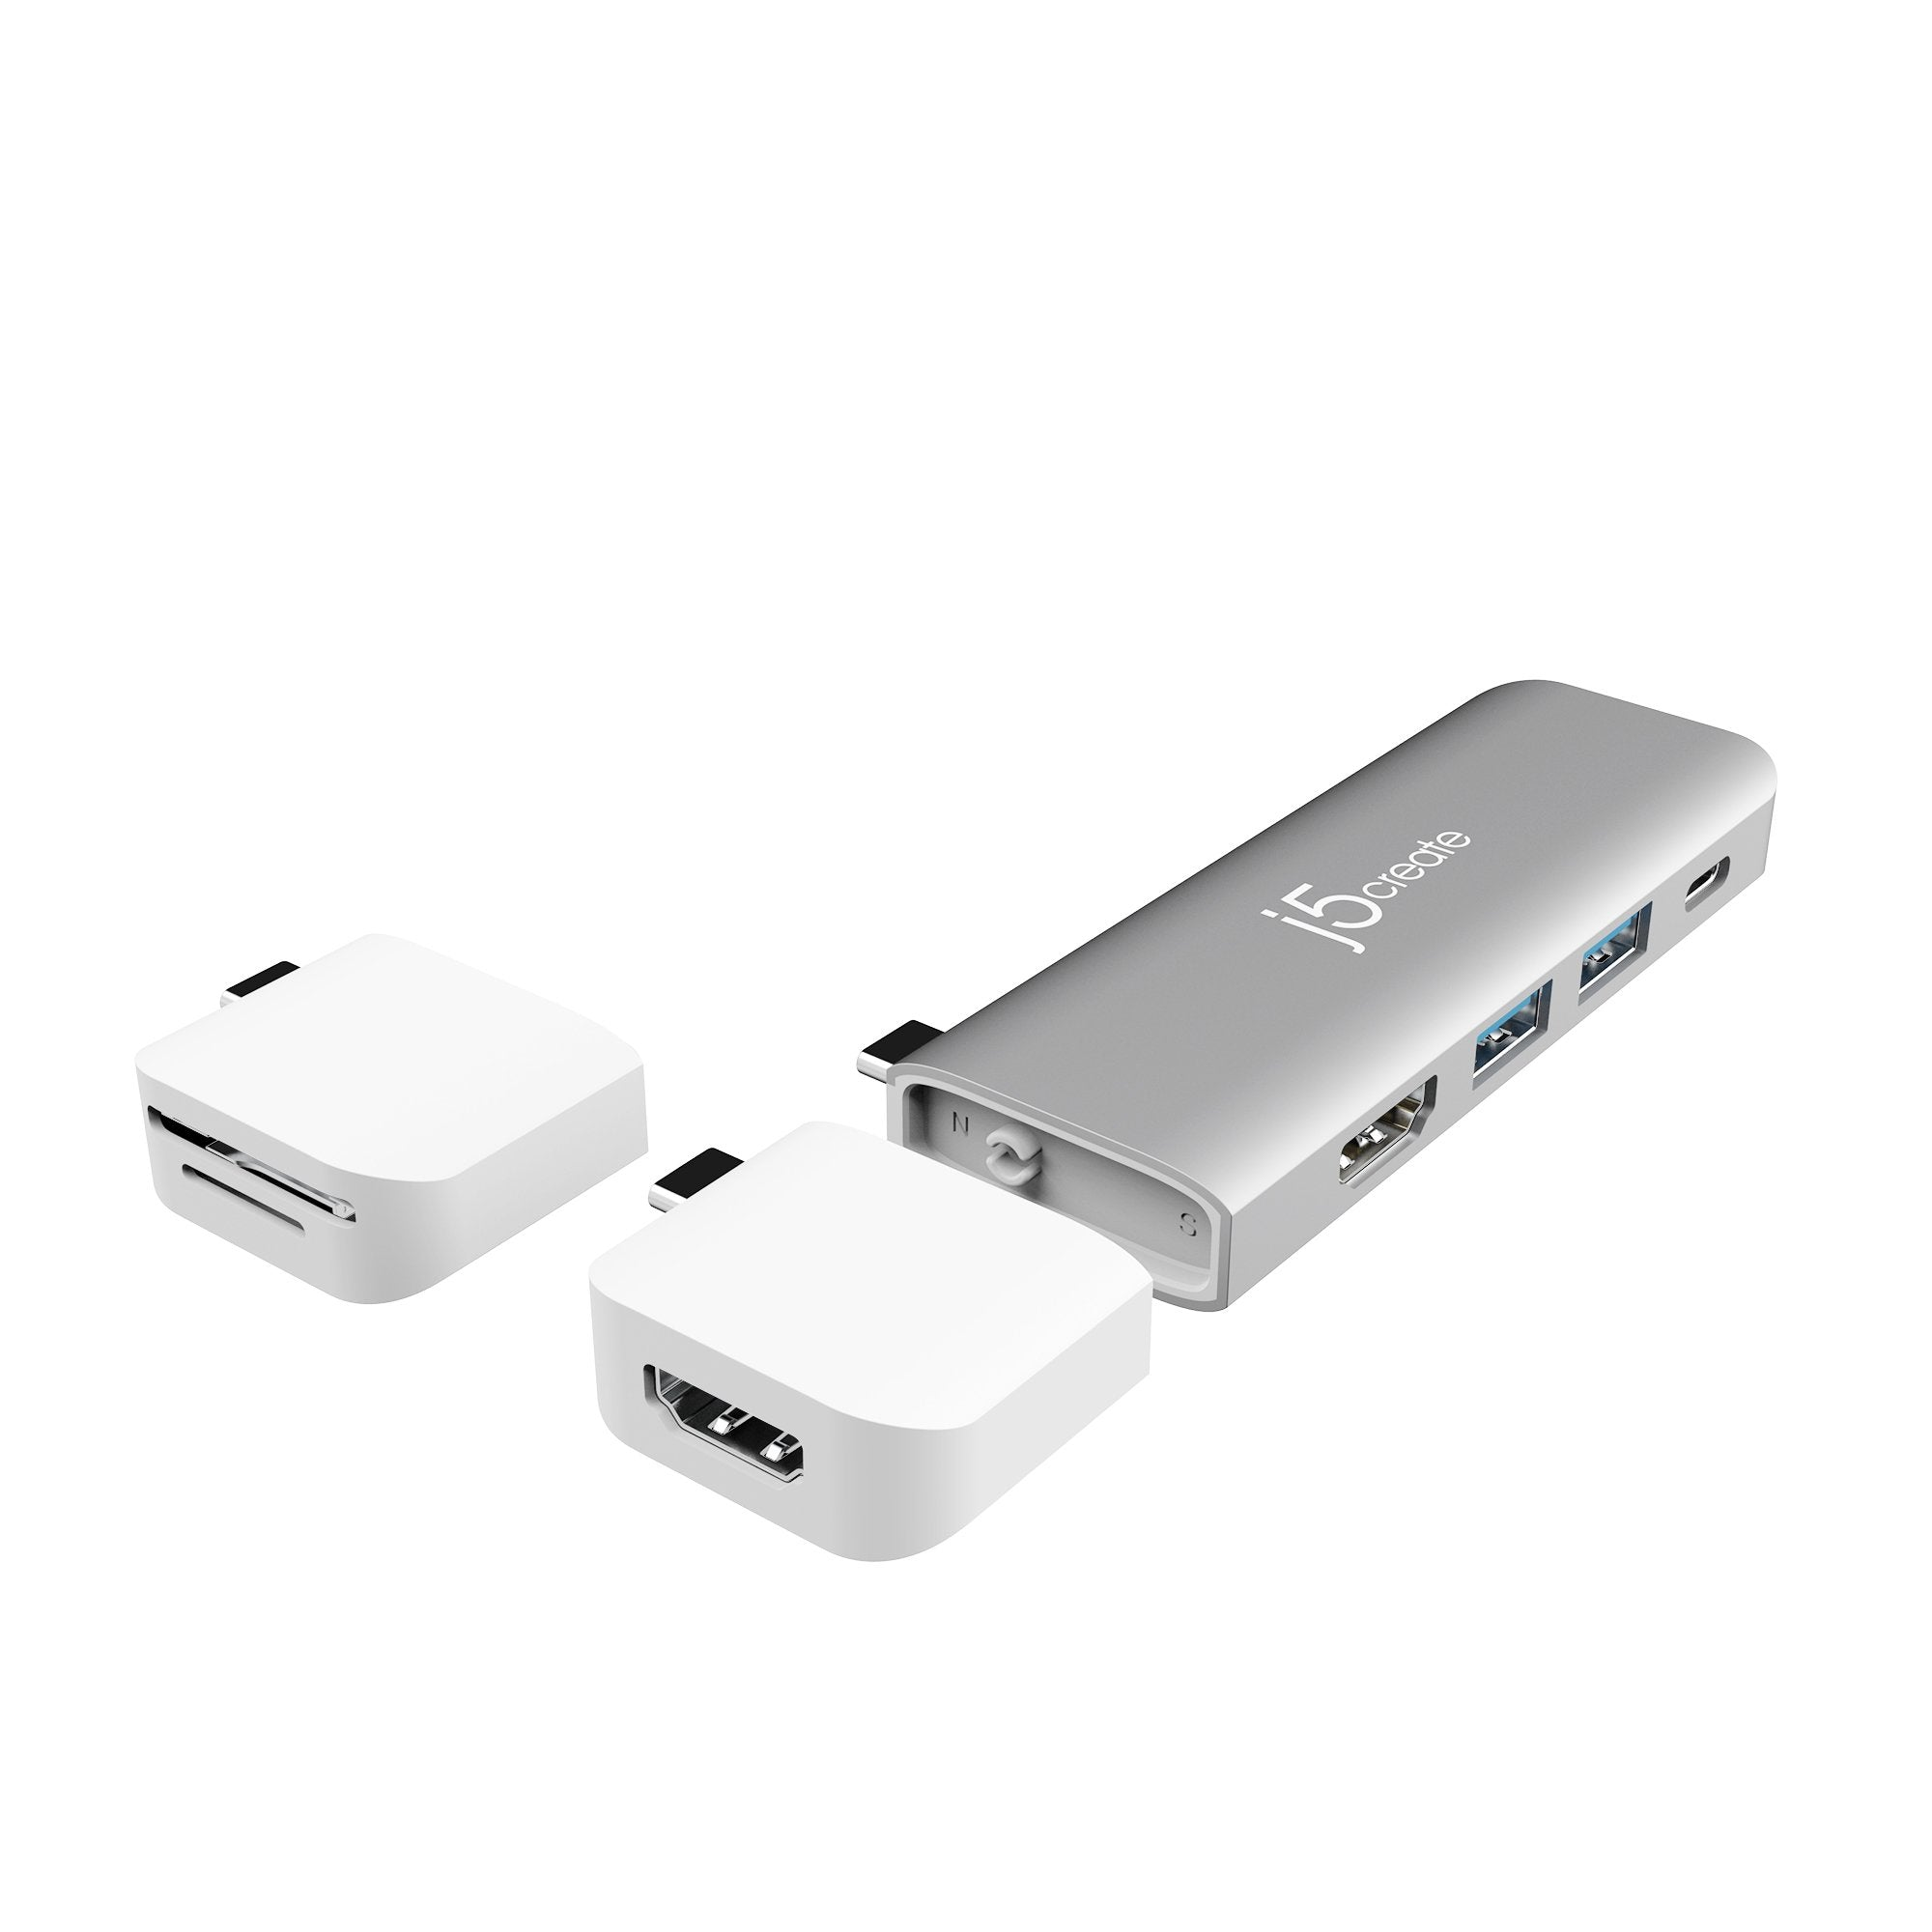 JCD387 ULTRADRIVE Kit USB-C™ Dual-Display Modular Dock